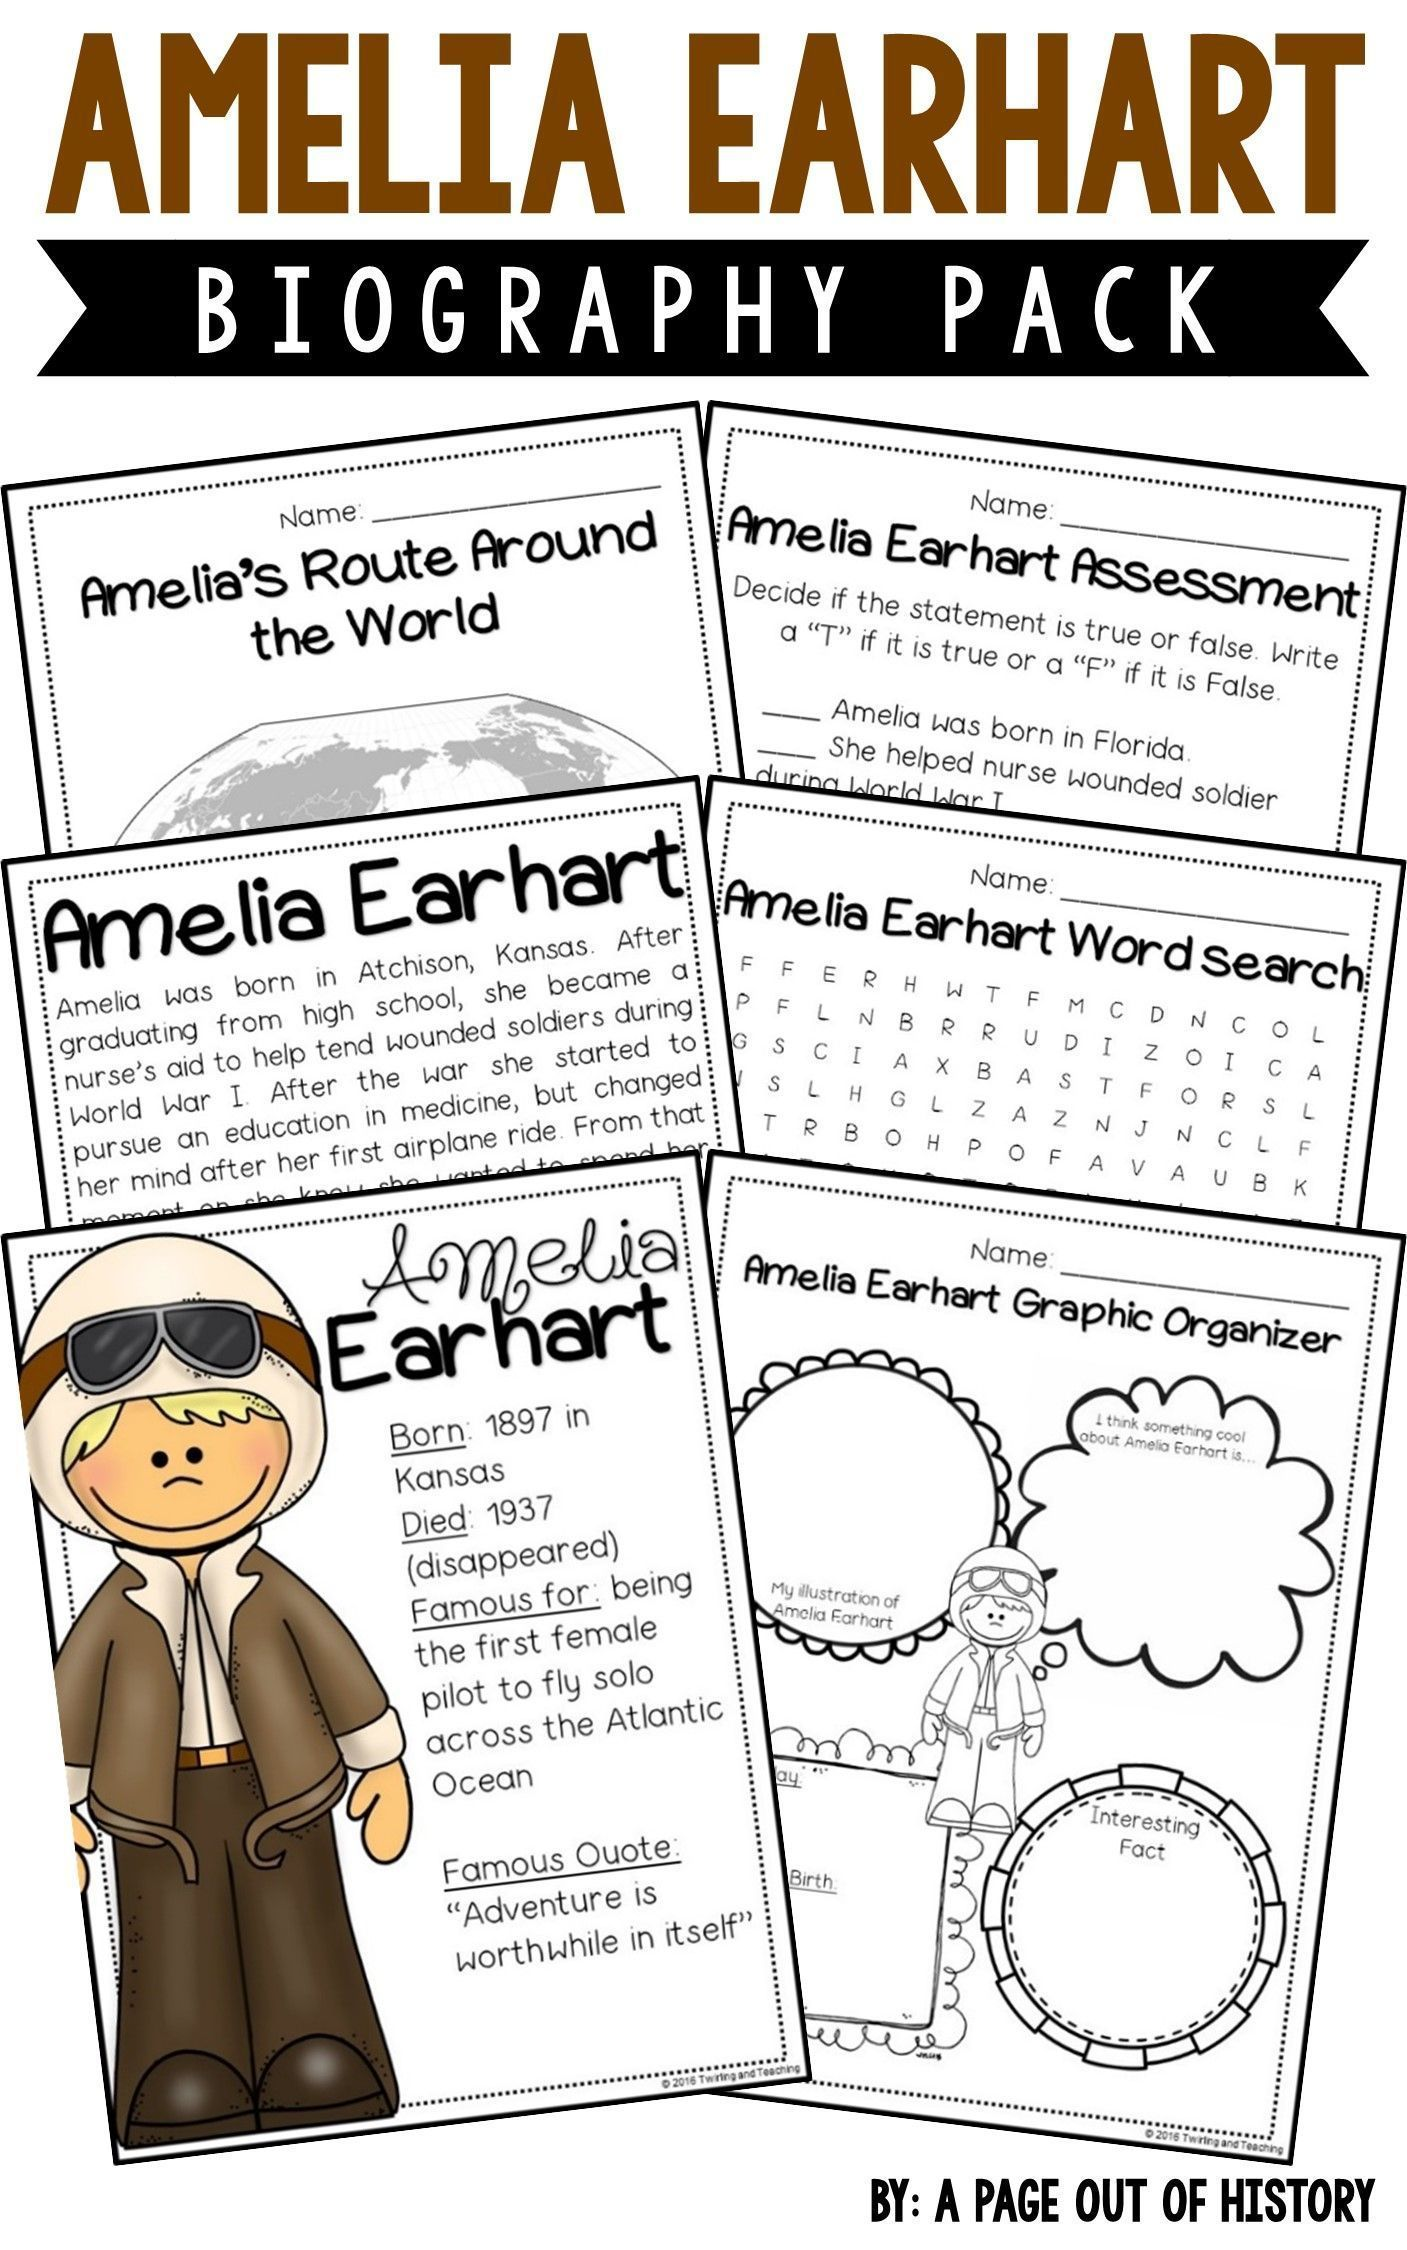 Amelia Earhart Biography Pack Women S History